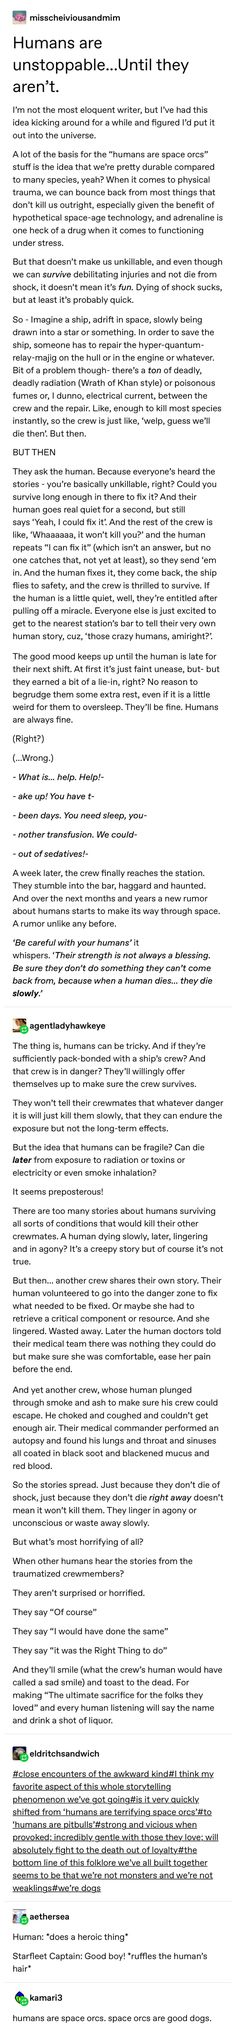 Wrote goodbye after reading the line, humans are space orcs Writing Promps, Writing Advice, Creative Writing, Tumblr Aliens, Space Australia, Story Prompts, Text Posts, Writing Inspiration, Writer